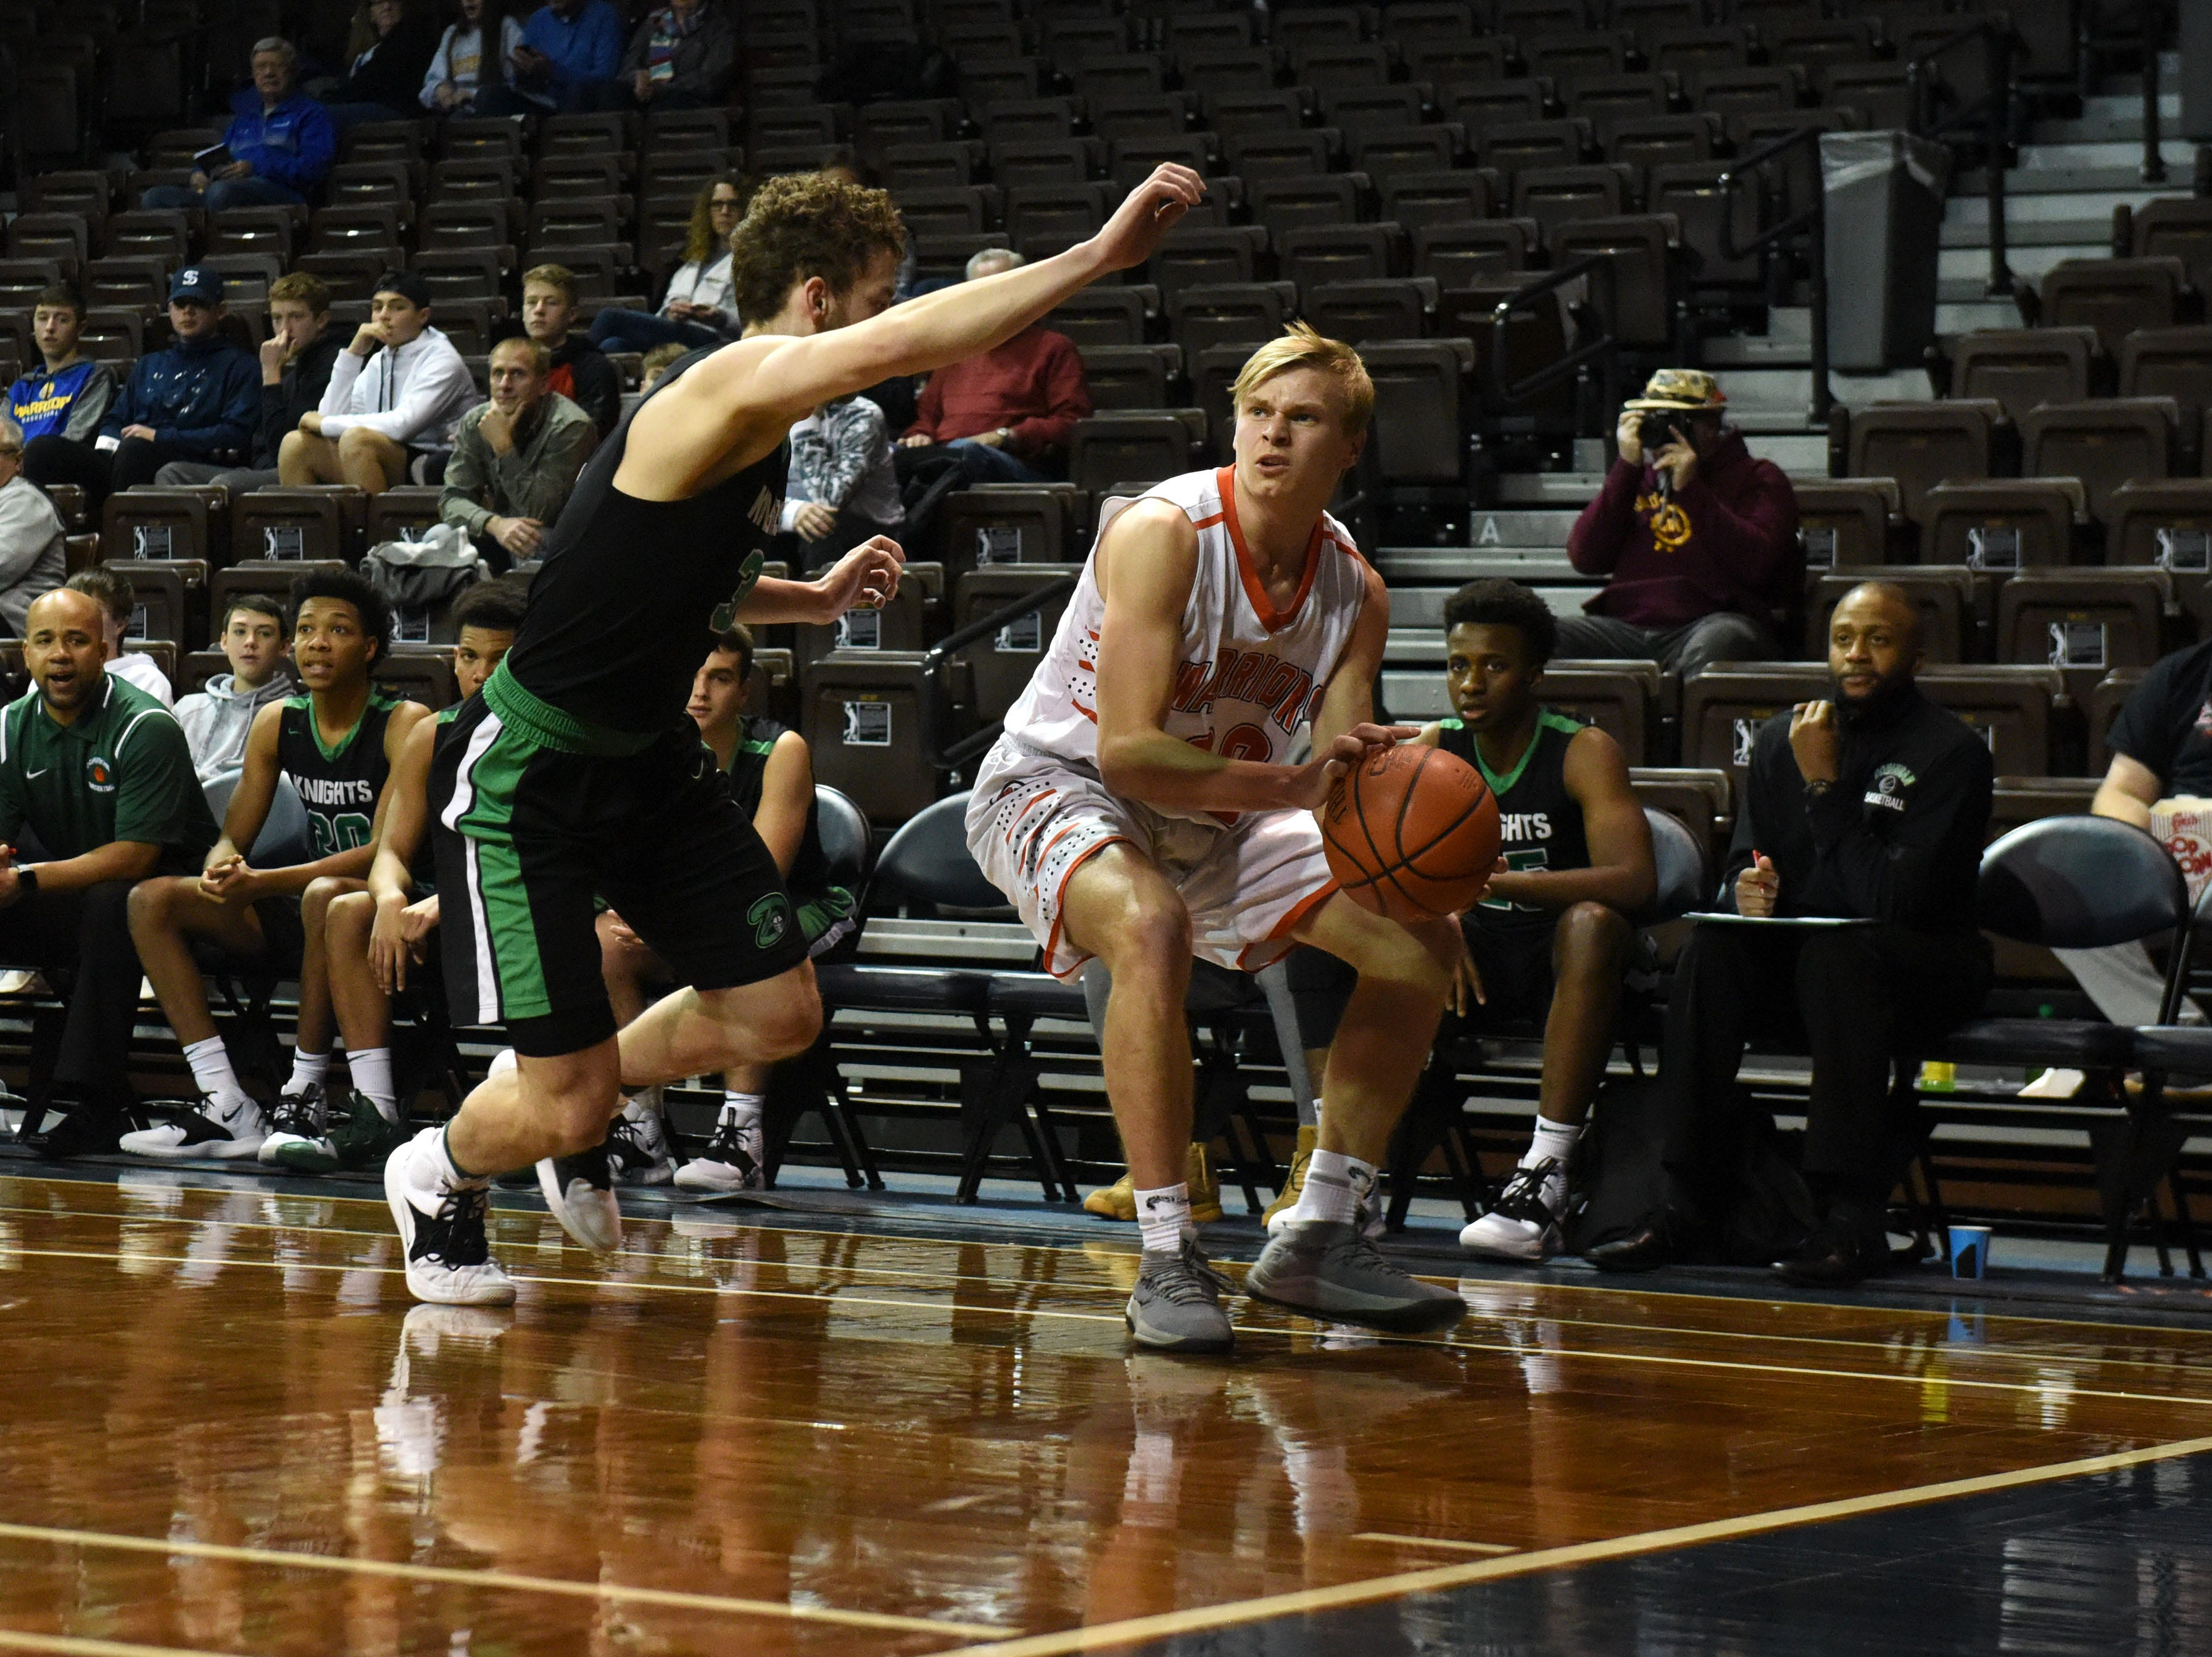 Washington's Gabe Person (30) looks to pass the ball during a game against Dominican at the Hoop City Classic at the Sanford Pentagon in Sioux Falls, S.D., Saturday, Dec. 29, 2018.